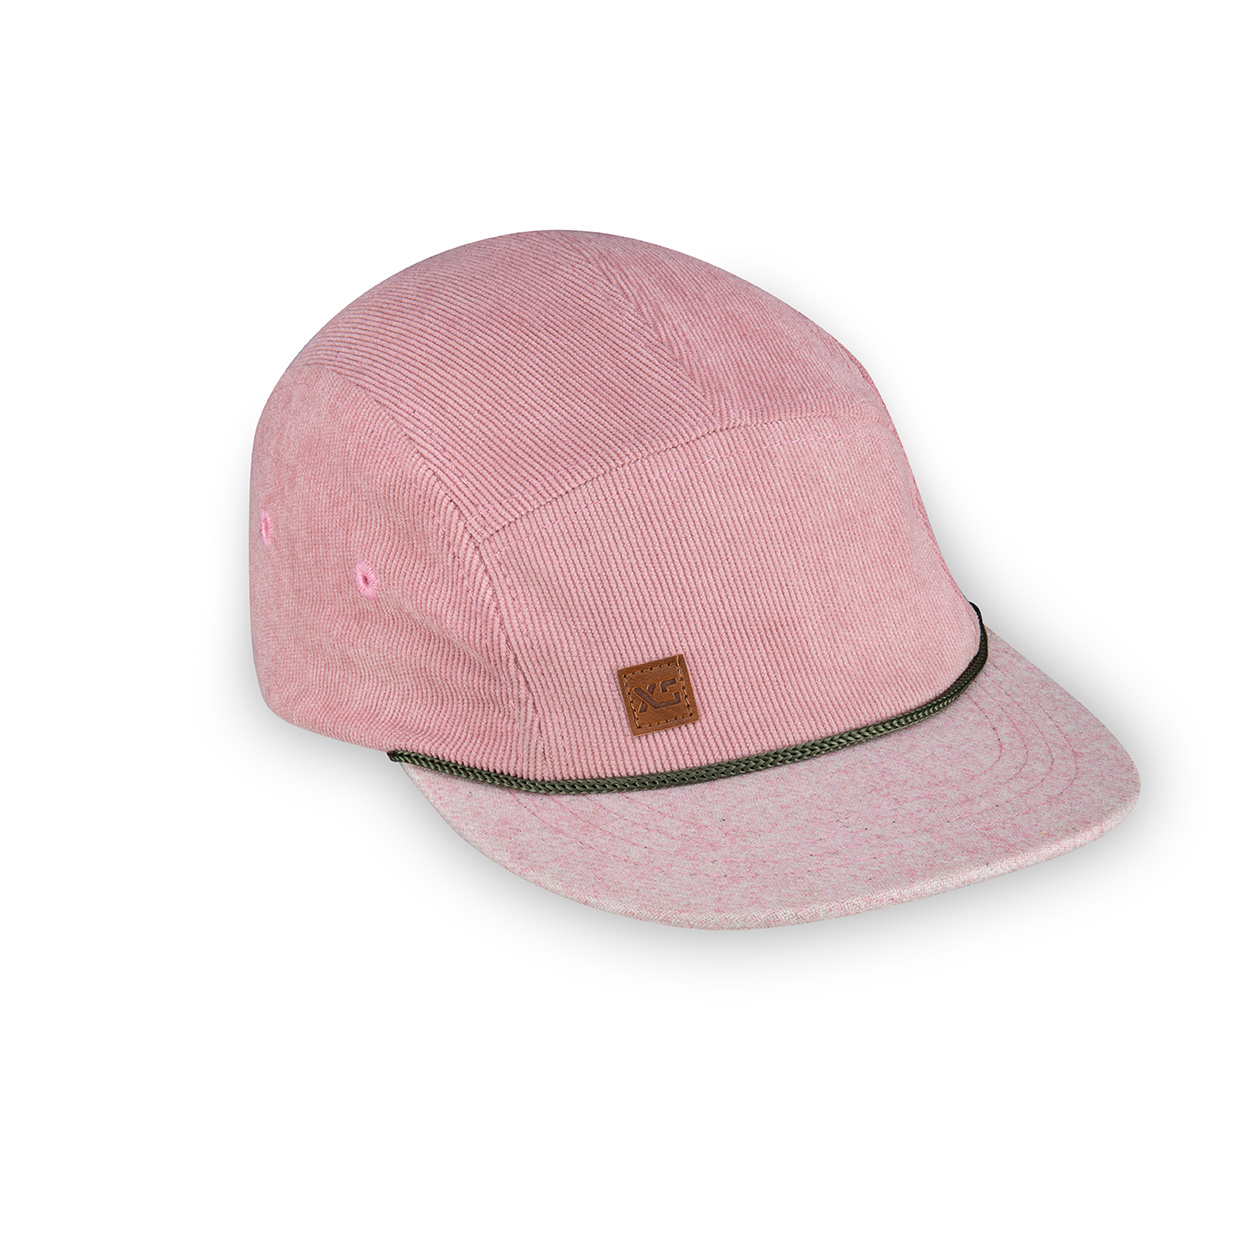 XS Unified XS Unified Kid's 5 Panel Hat Pink Corduroy